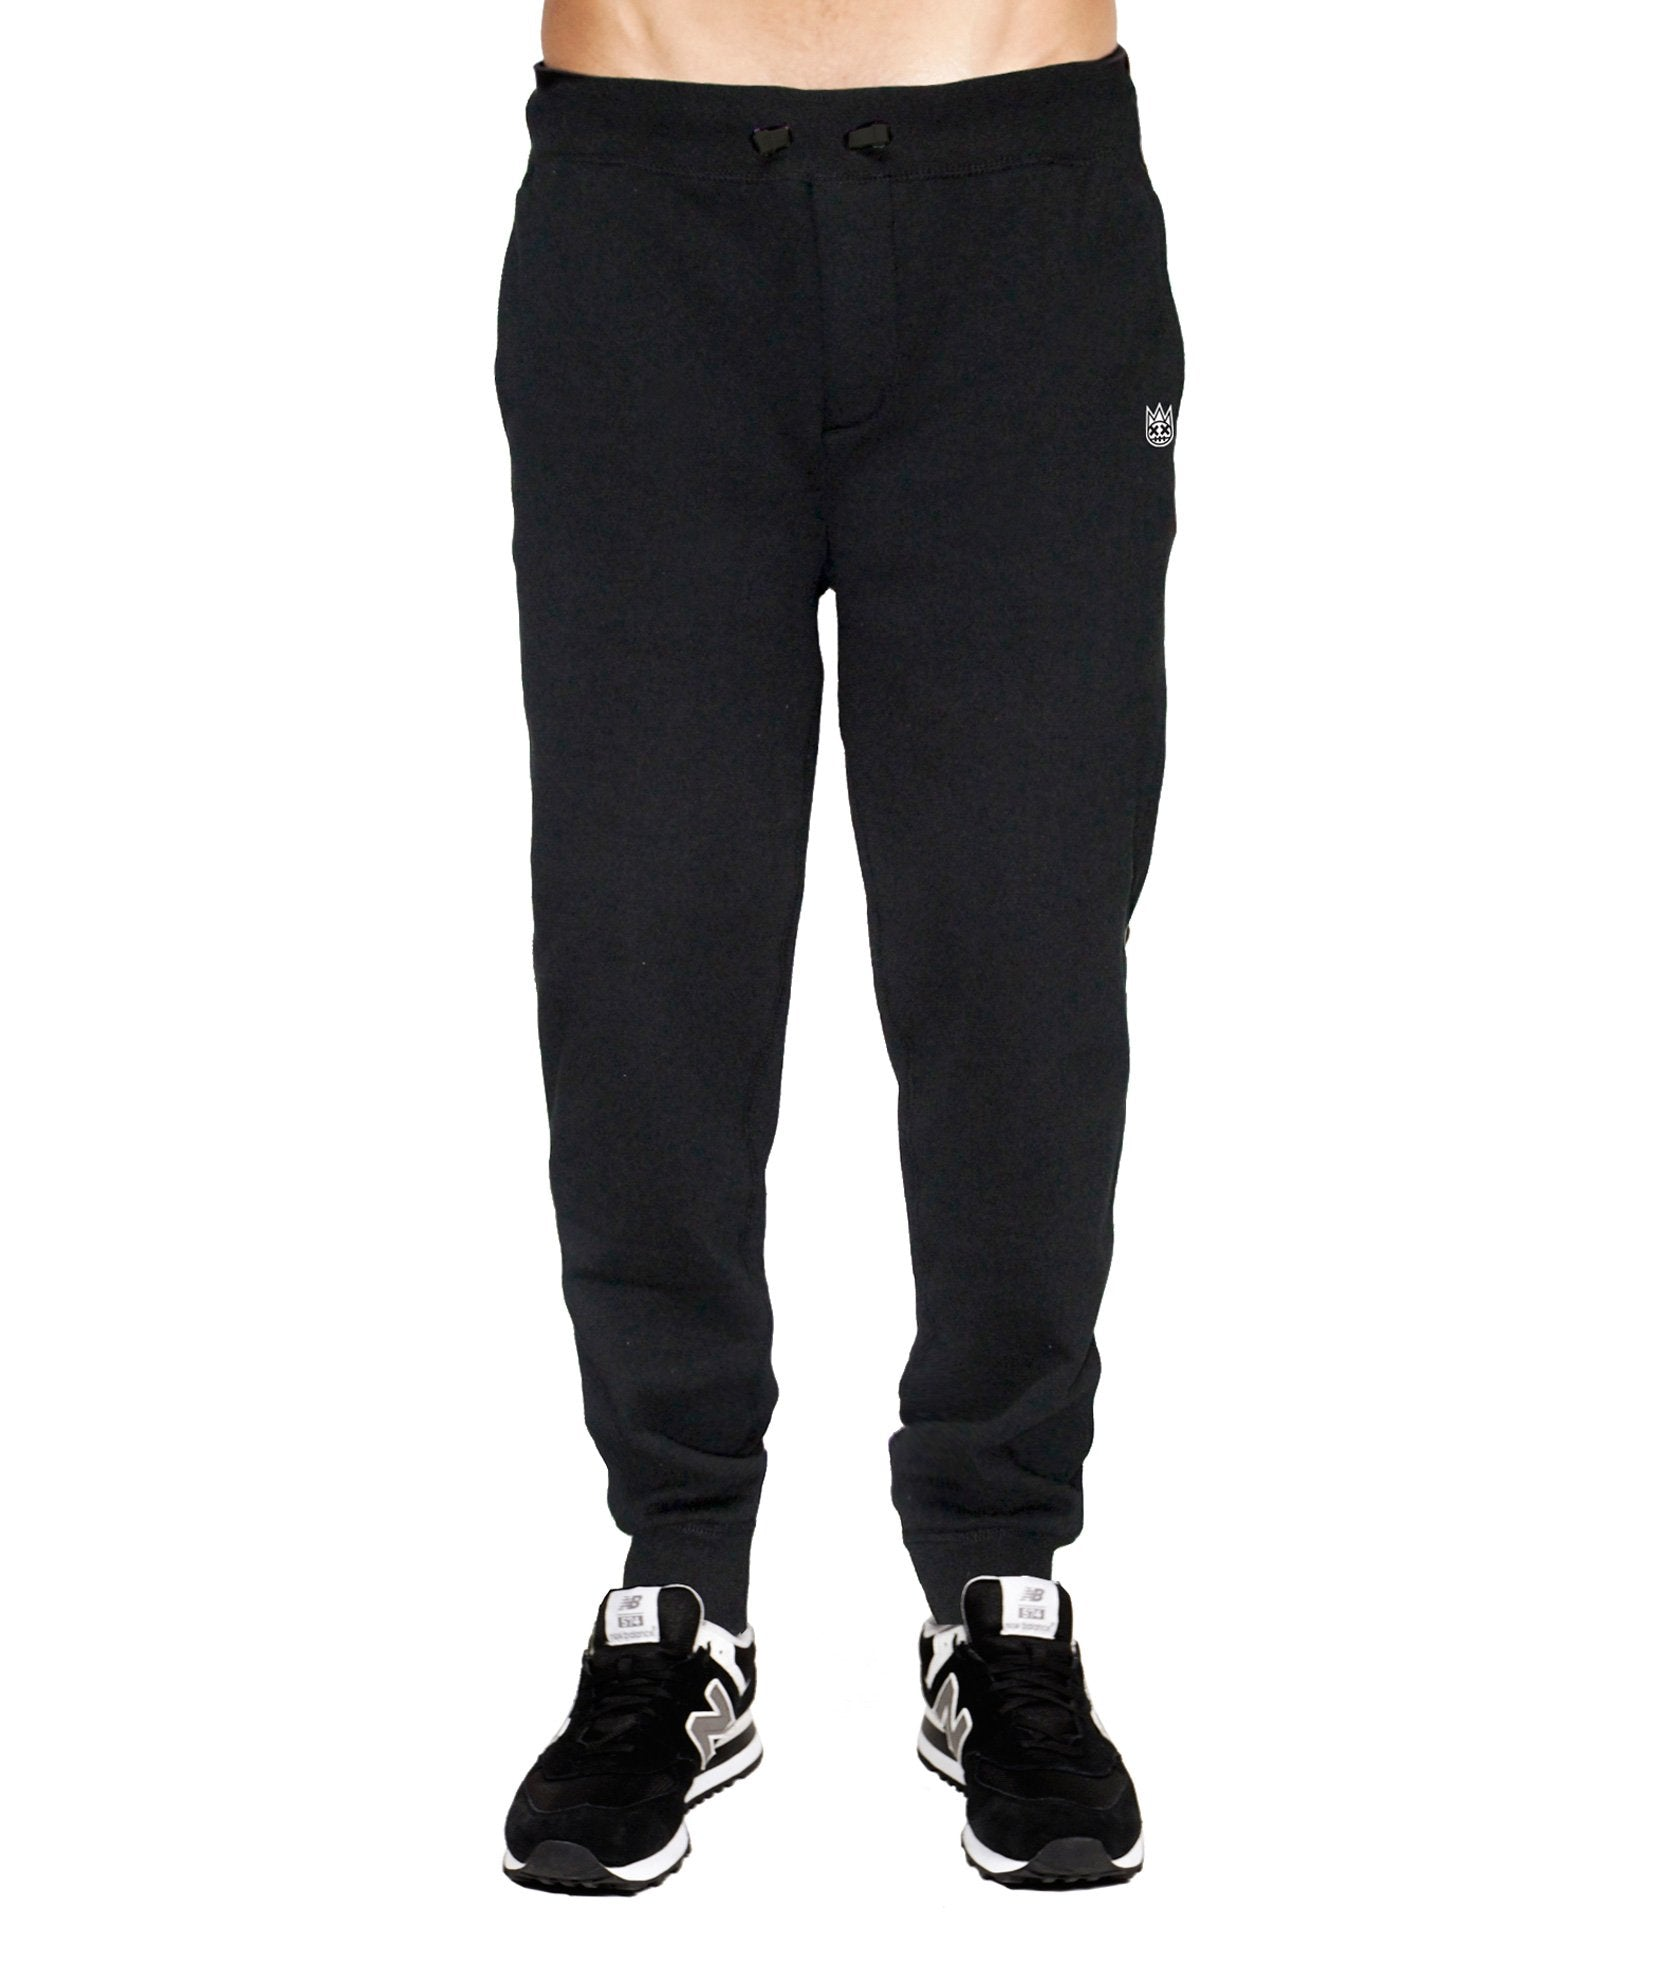 Men's Fleece Sweat Pants in Black